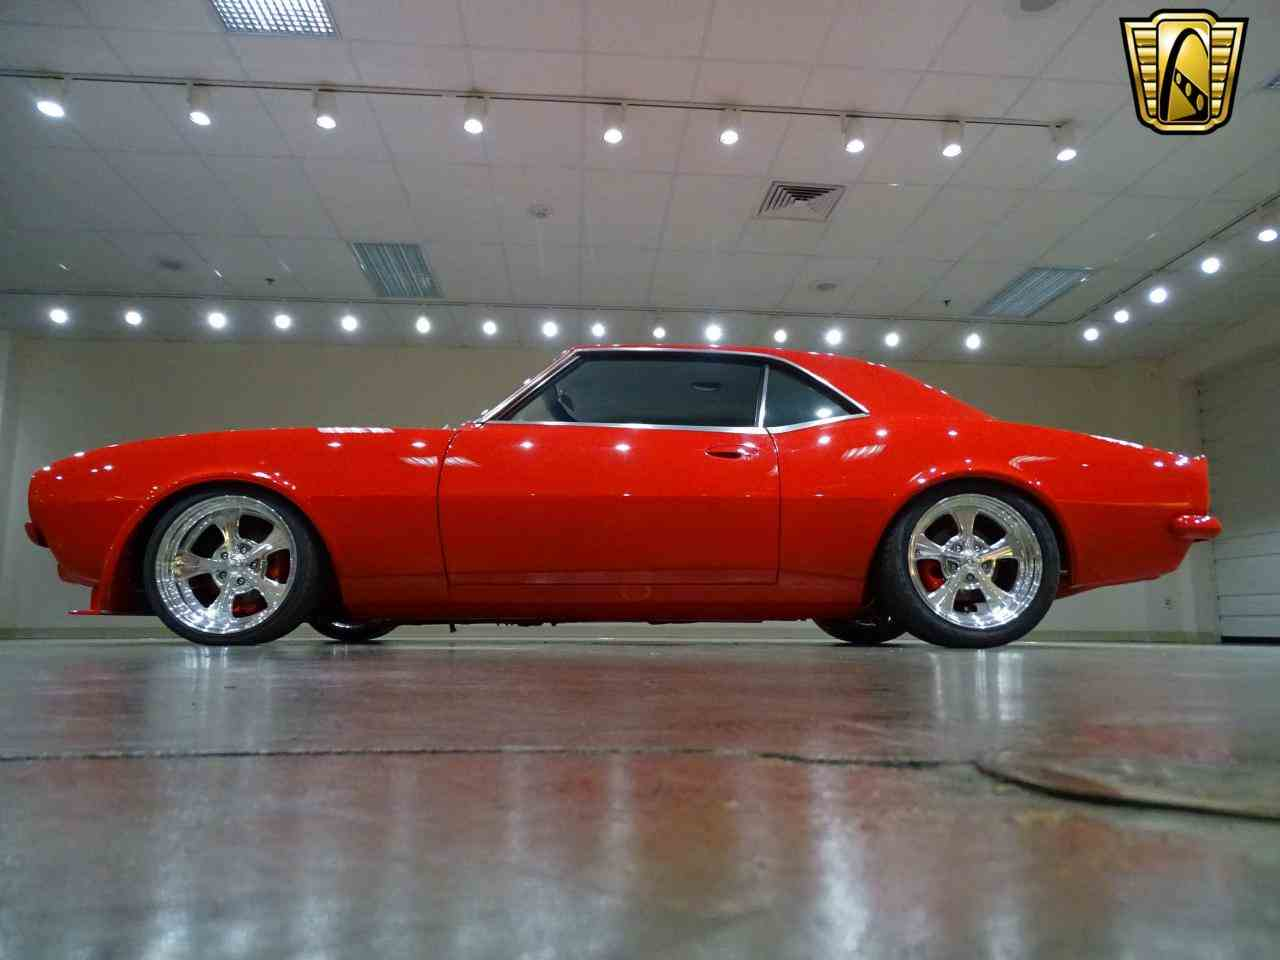 Large Picture of 1968 Camaro located in Illinois - $140,000.00 Offered by Gateway Classic Cars - St. Louis - MZE5